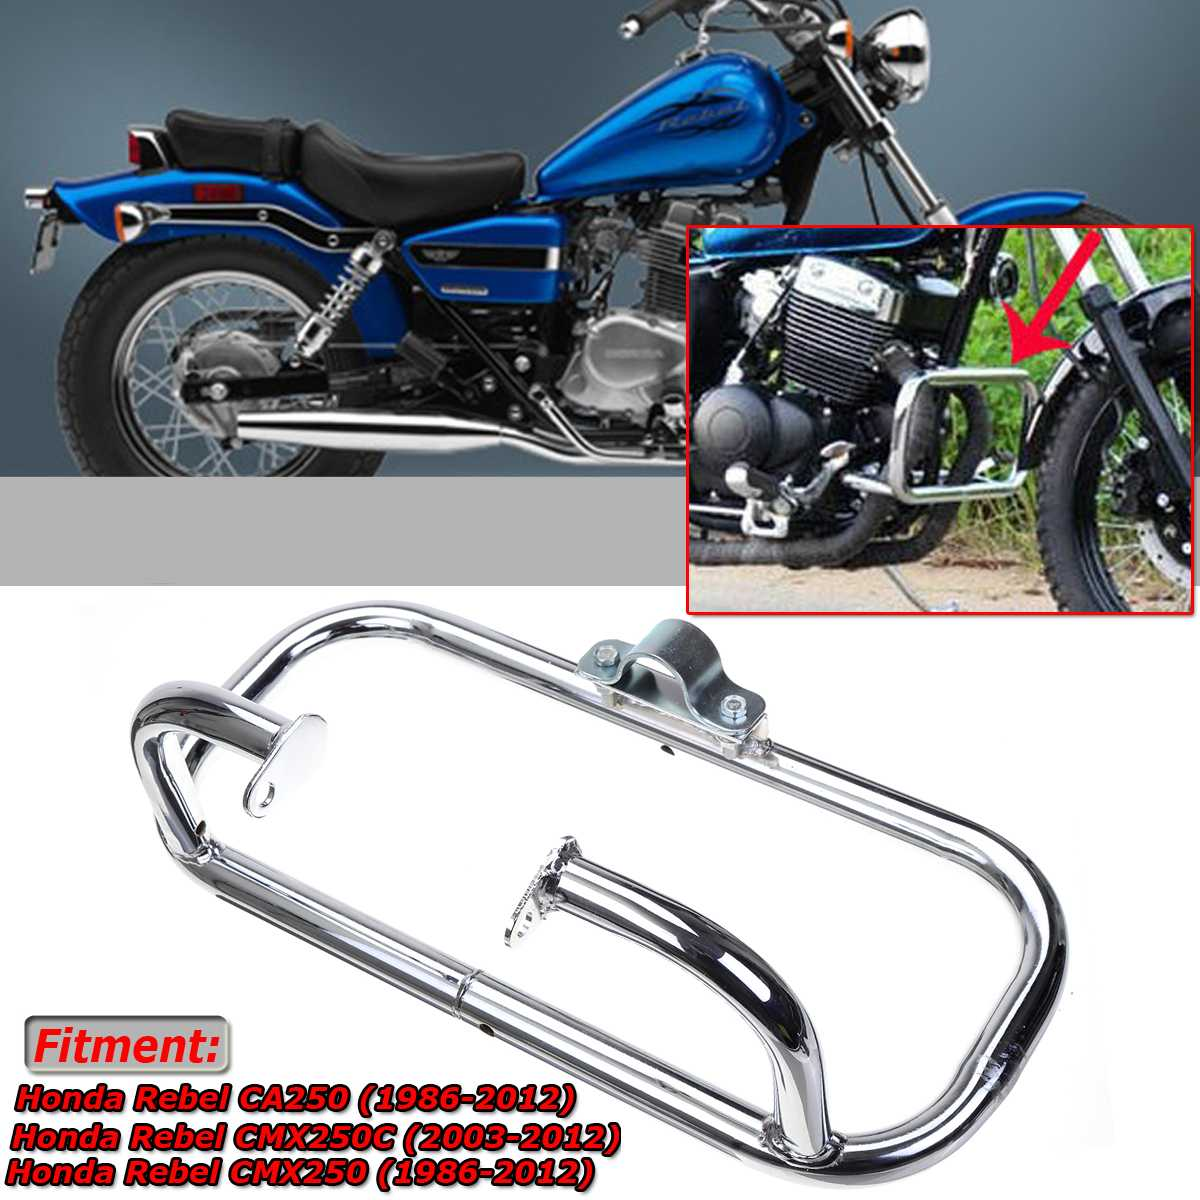 hight resolution of new engine guard crash bar motorcycle front engine guard crash bar for honda rebel 250 ca250 cmx250 cmx250c metal safety bumper in bumpers chassis from